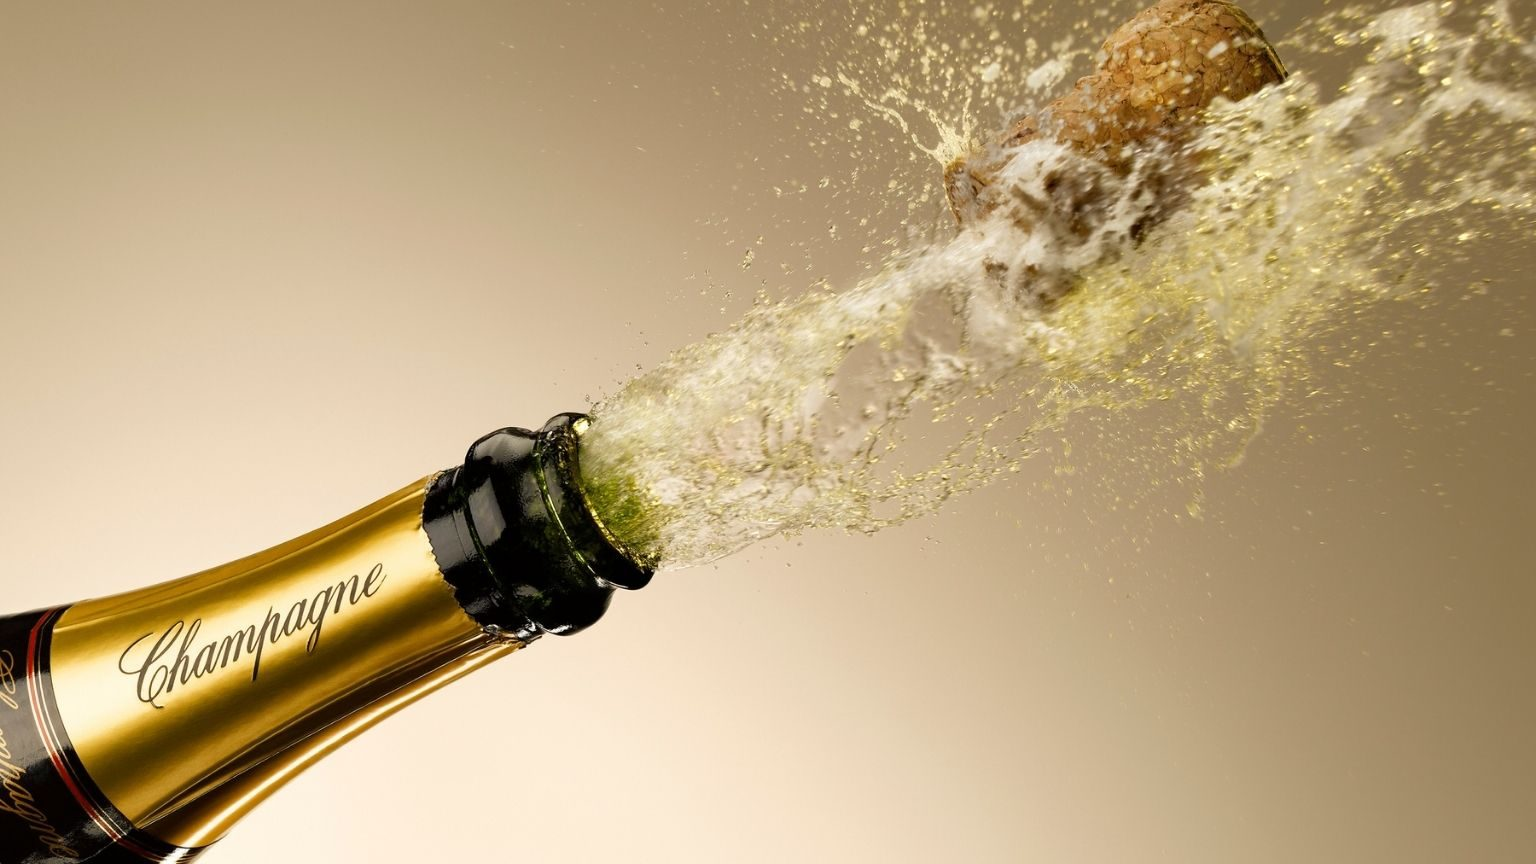 Champagne and cork exploding from bottle